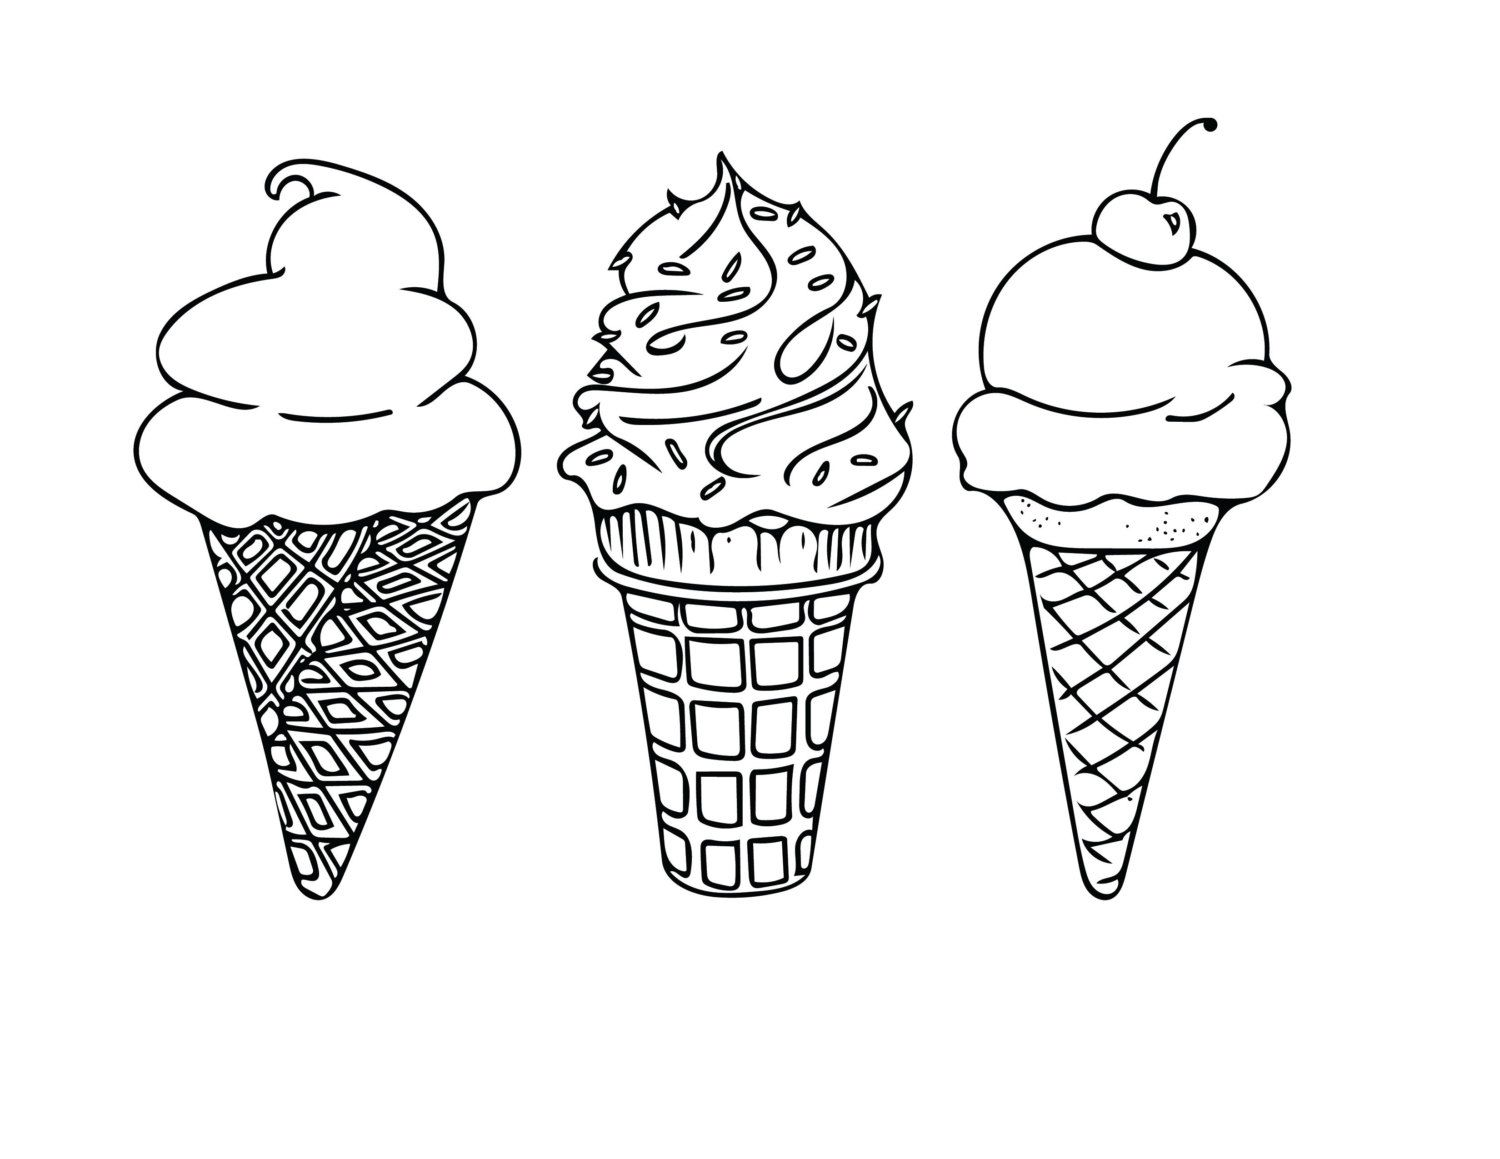 photo relating to Ice Cream Coloring Pages Printable named ice product coloring internet pages printable Selection - Luxurious